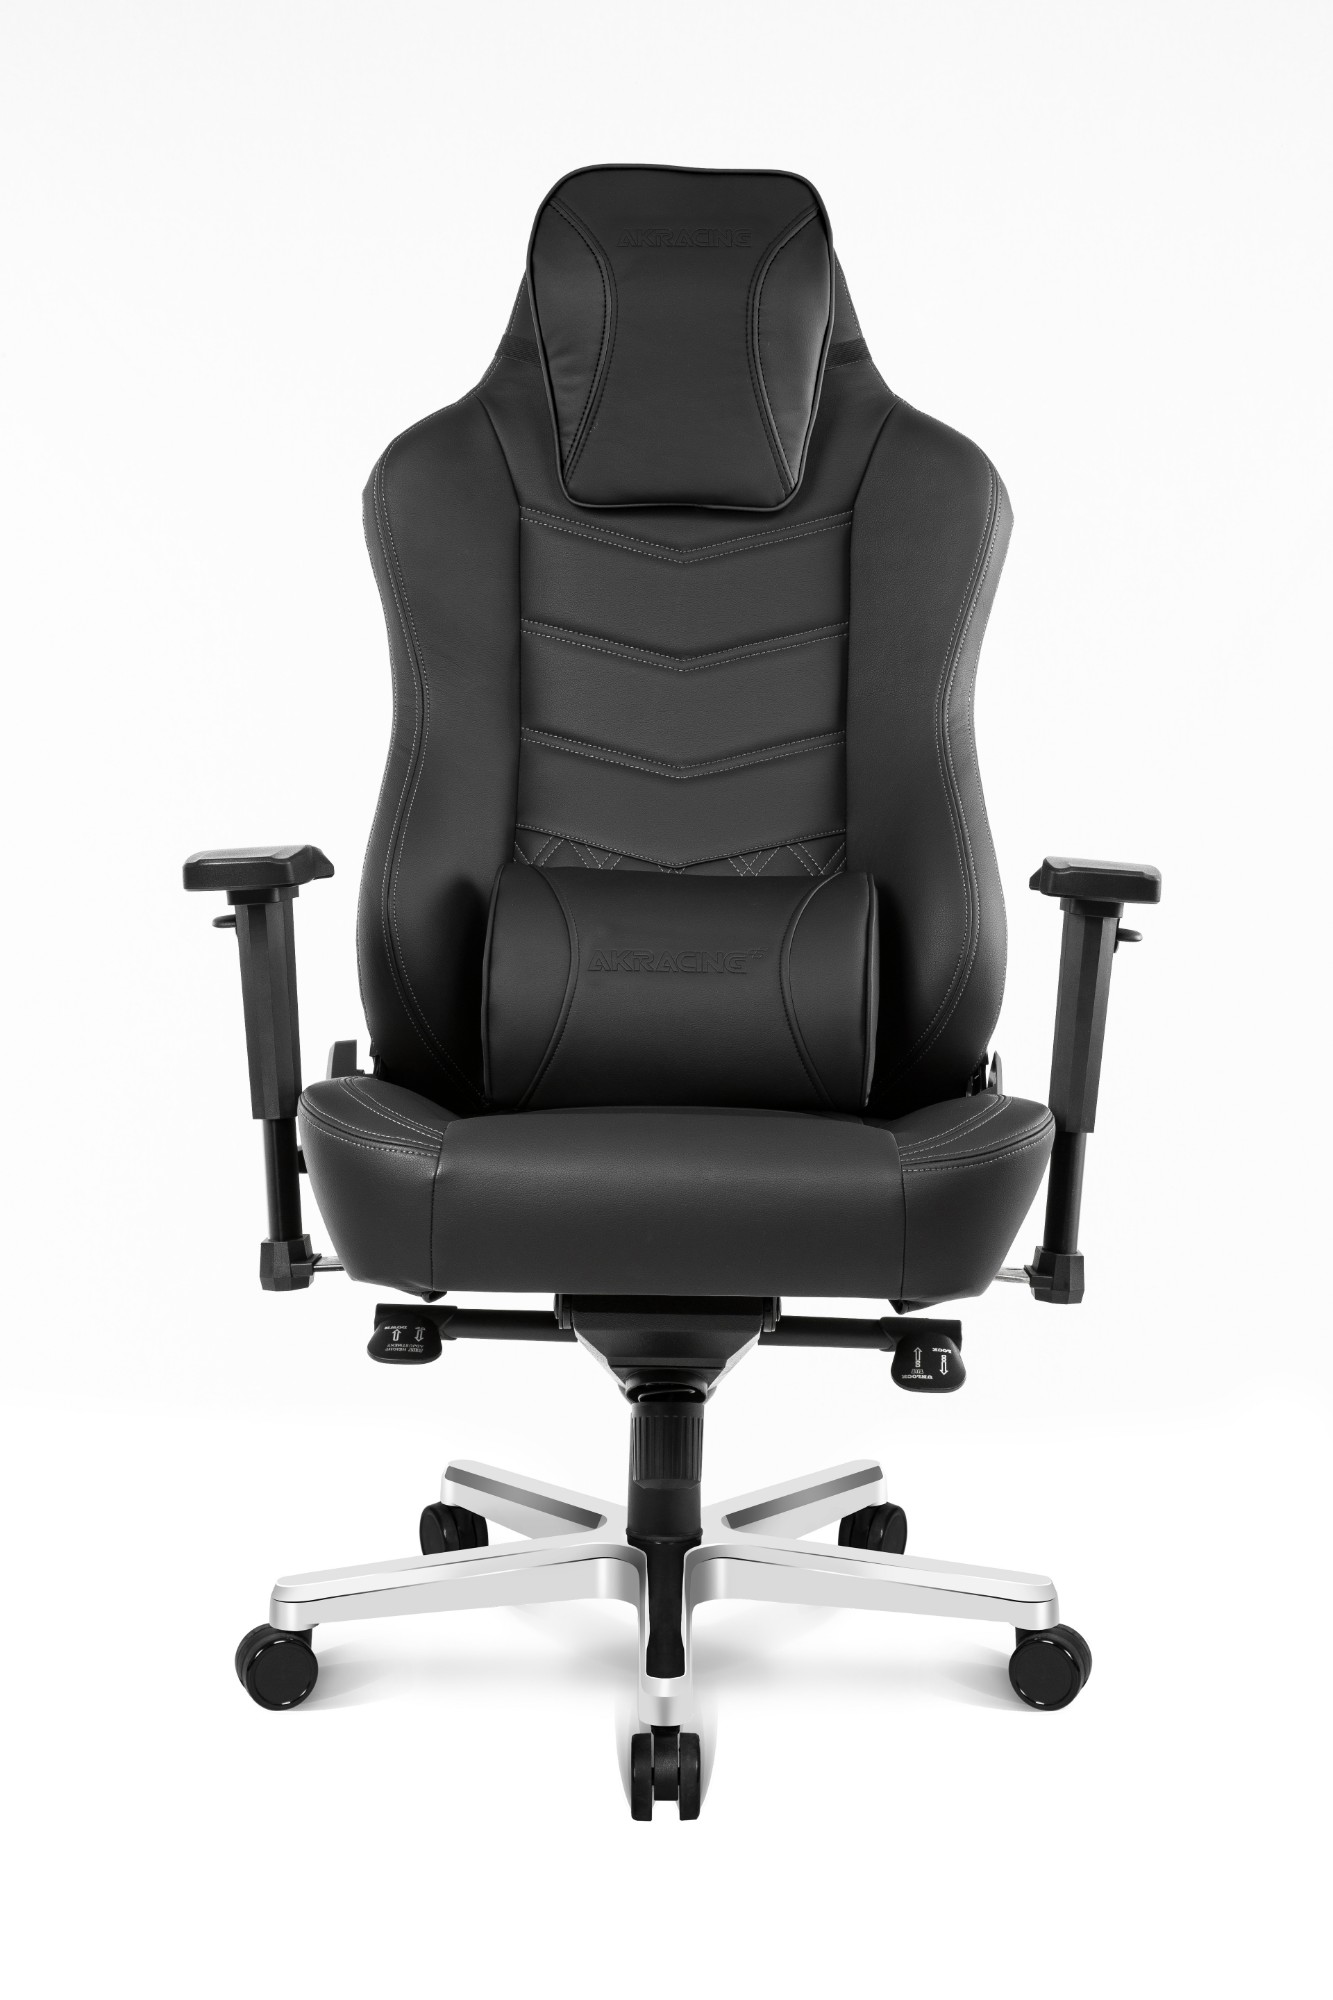 AKRacing Onyx Padded seat Padded backrest office/computer chair